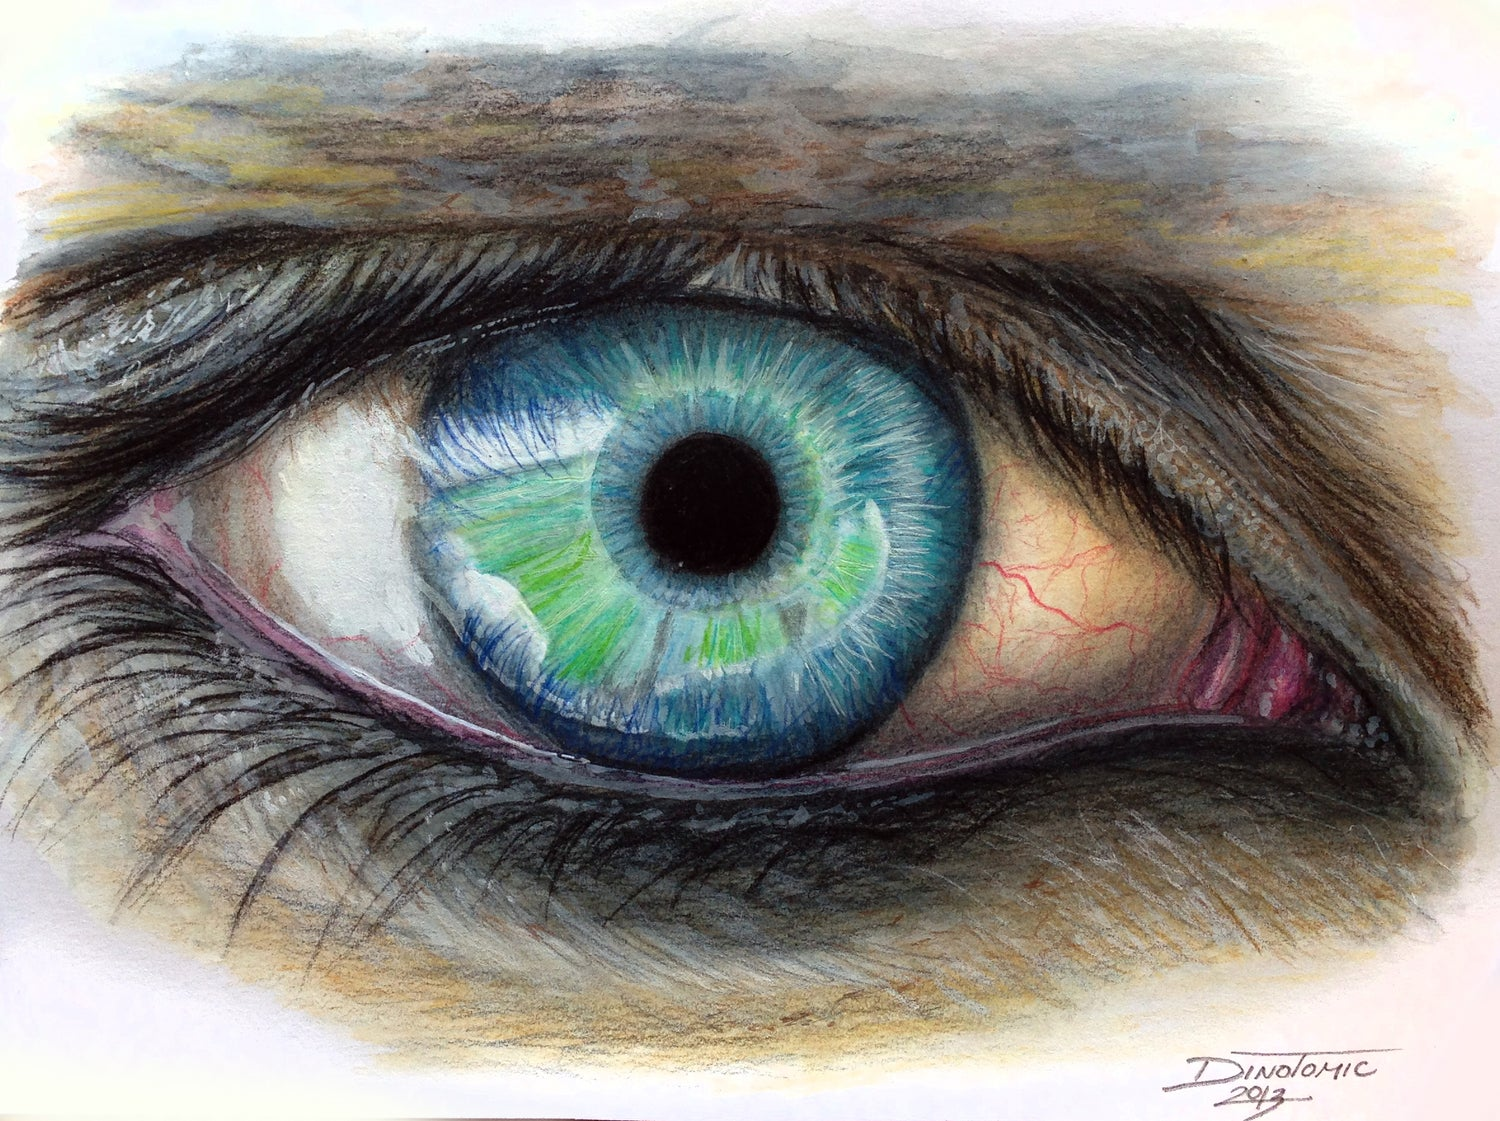 Image of #166 Eye colorful drawing